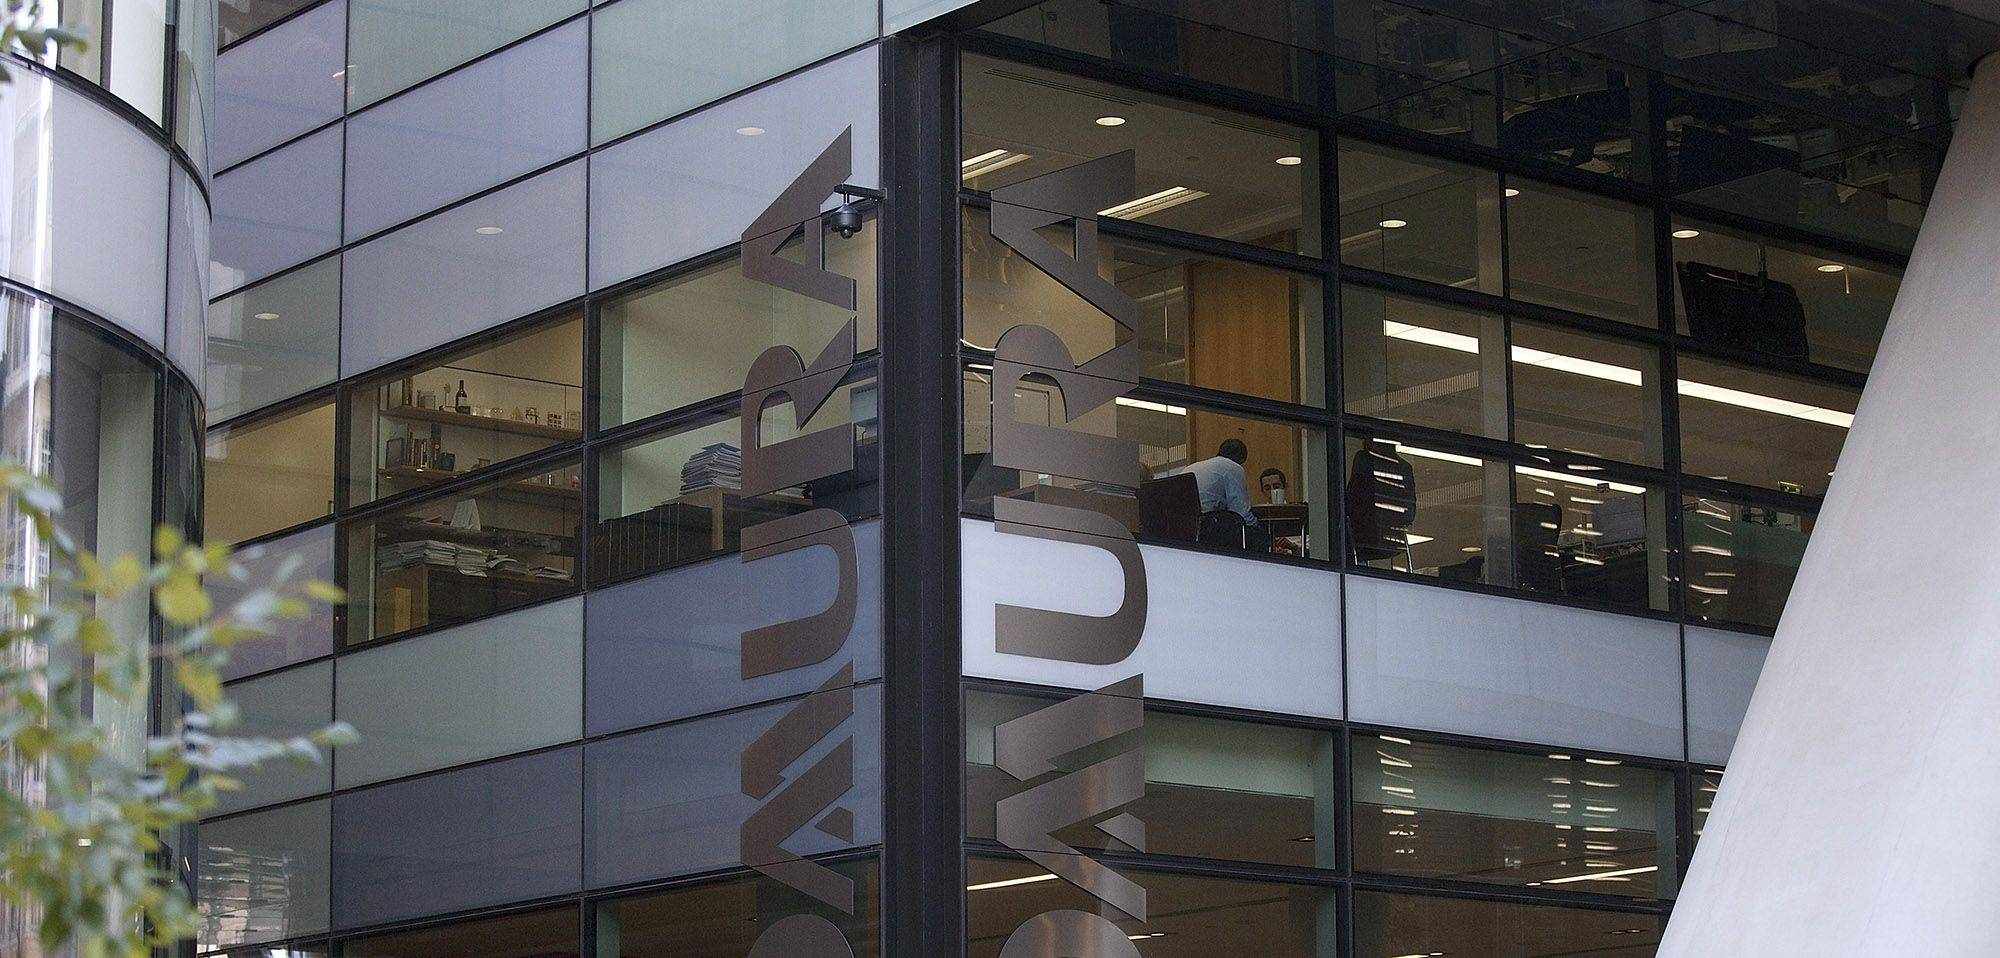 The U.K. headquarters of Nomura Asset Management Ltd, part of the Nomura Holdings Inc group, in London. Nomura signaled its intention to shift the focus of its retail business to wealth management in the late 1990s, as deregulation pushed brokerage commissions lower, and has stepped up those efforts in recent years. | BLOOMBERG